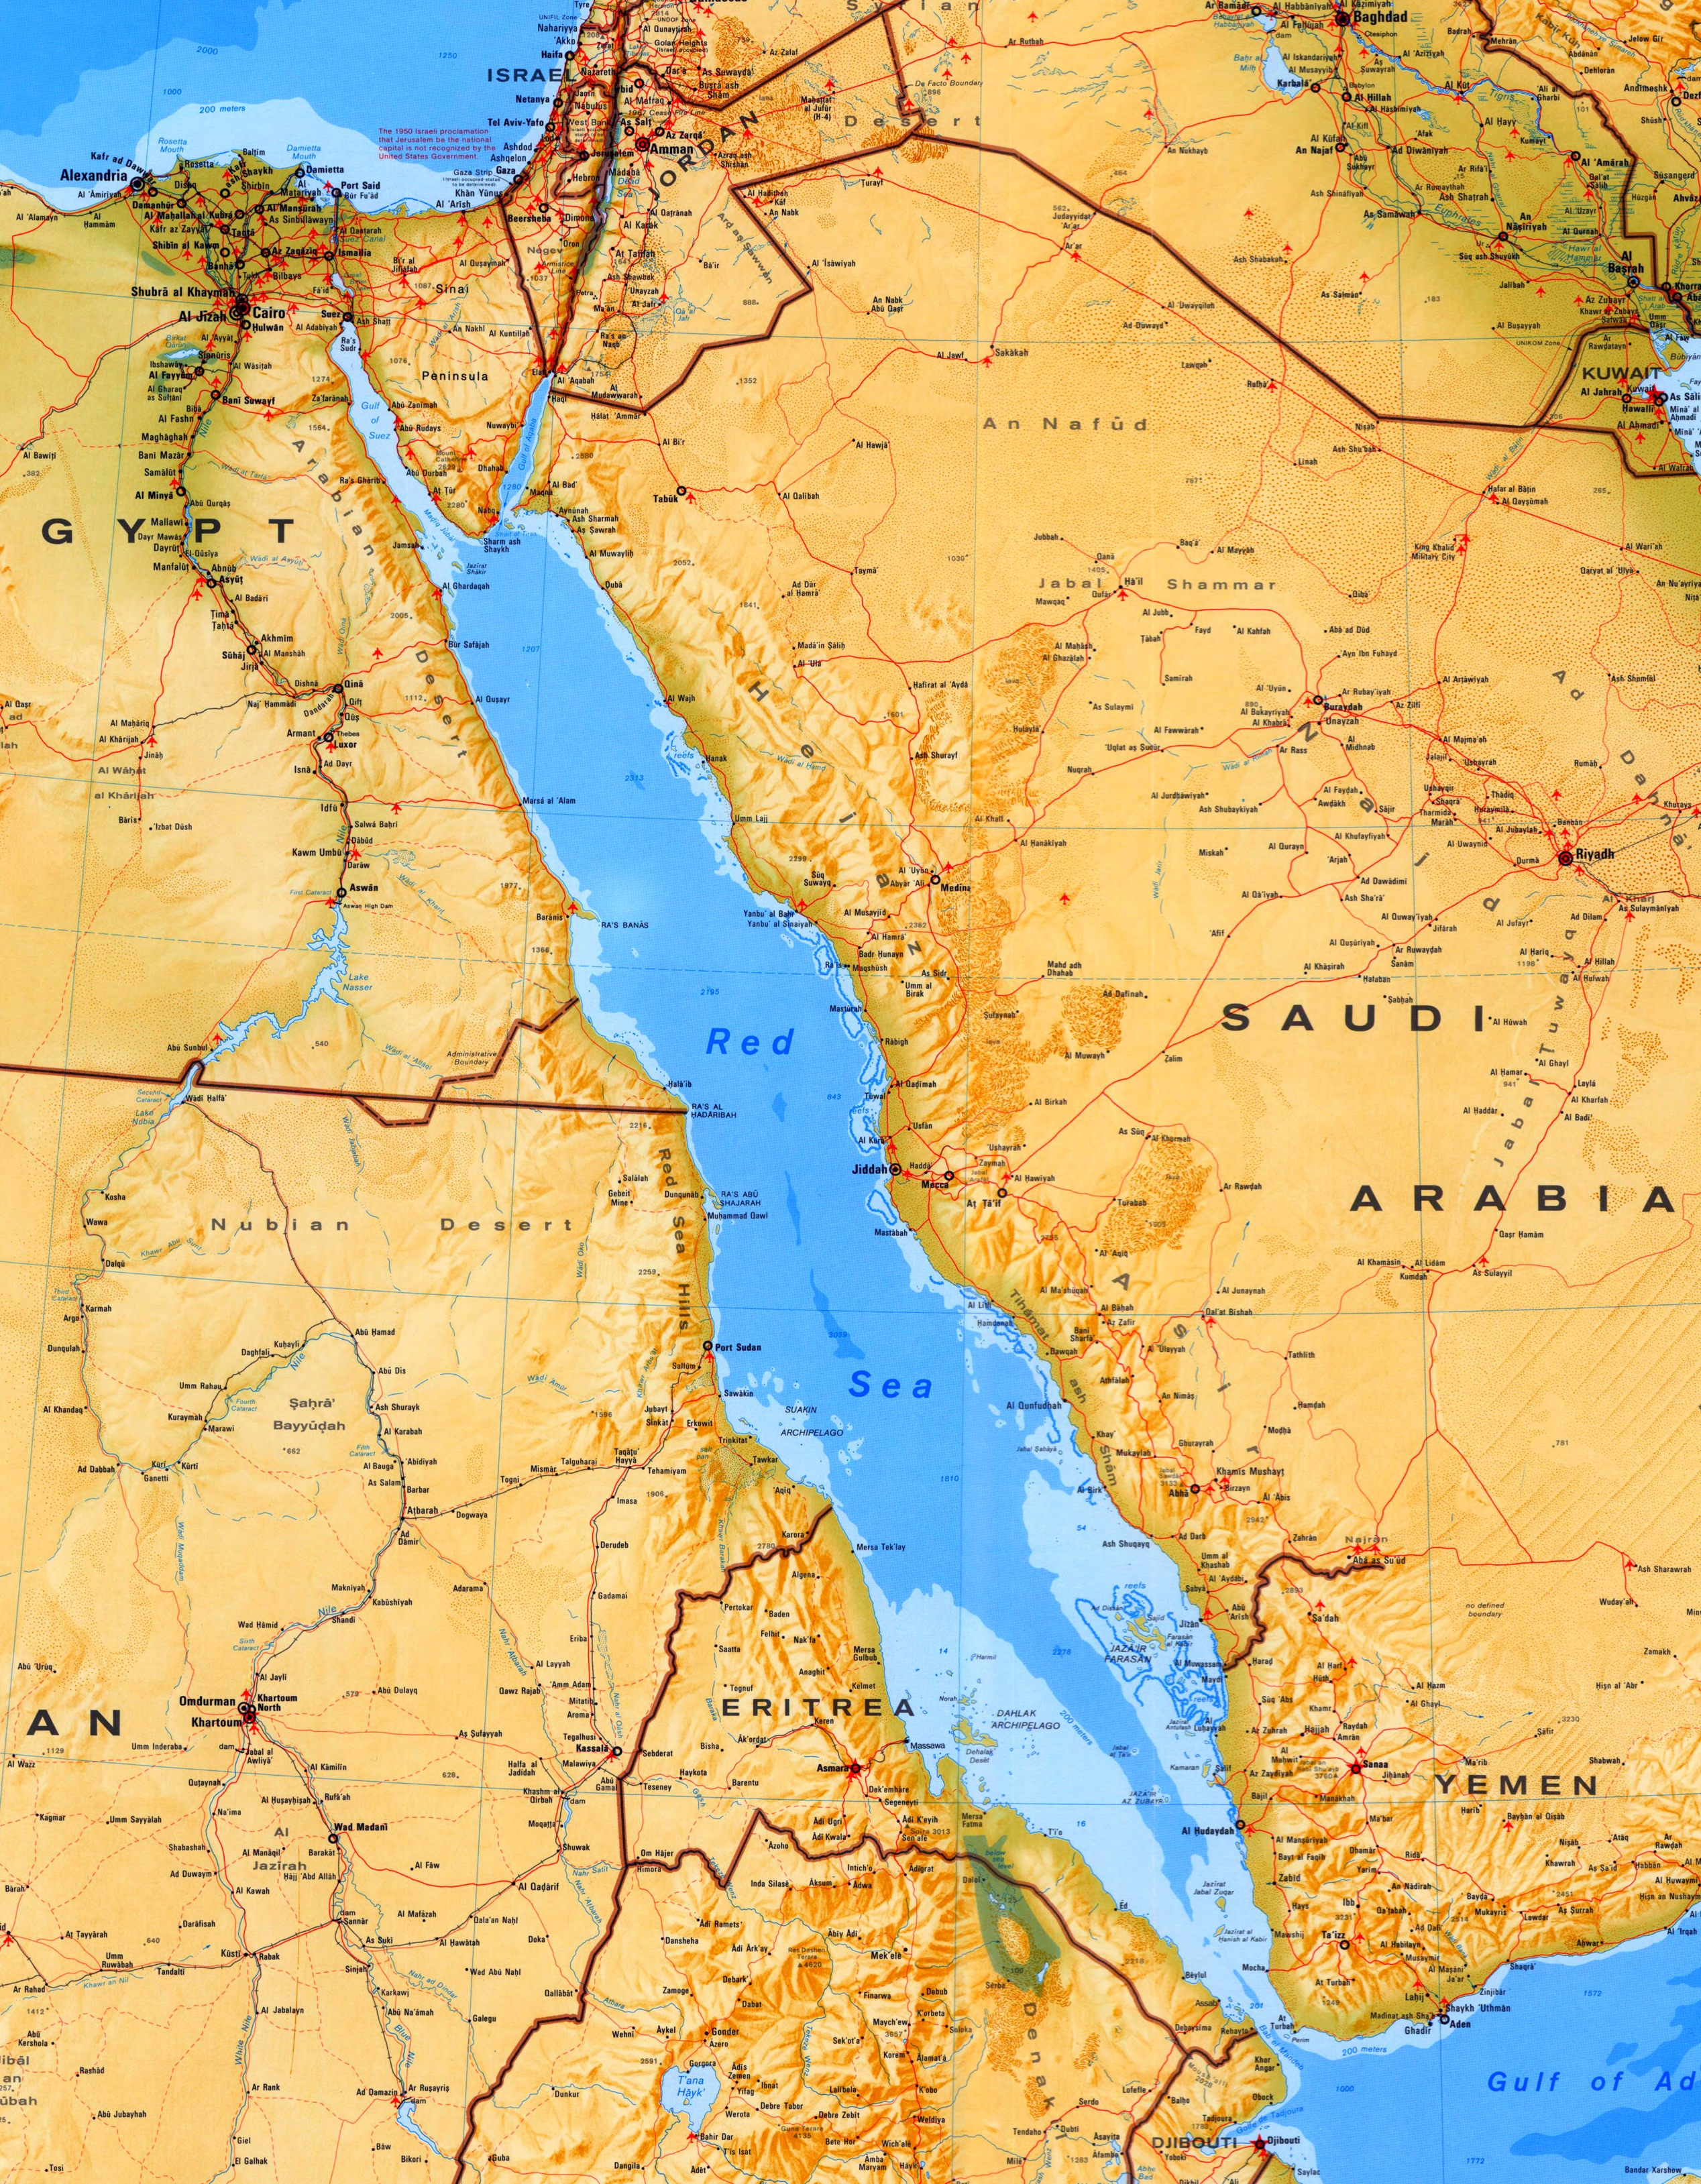 Red Sea Maps Maps of Red Sea